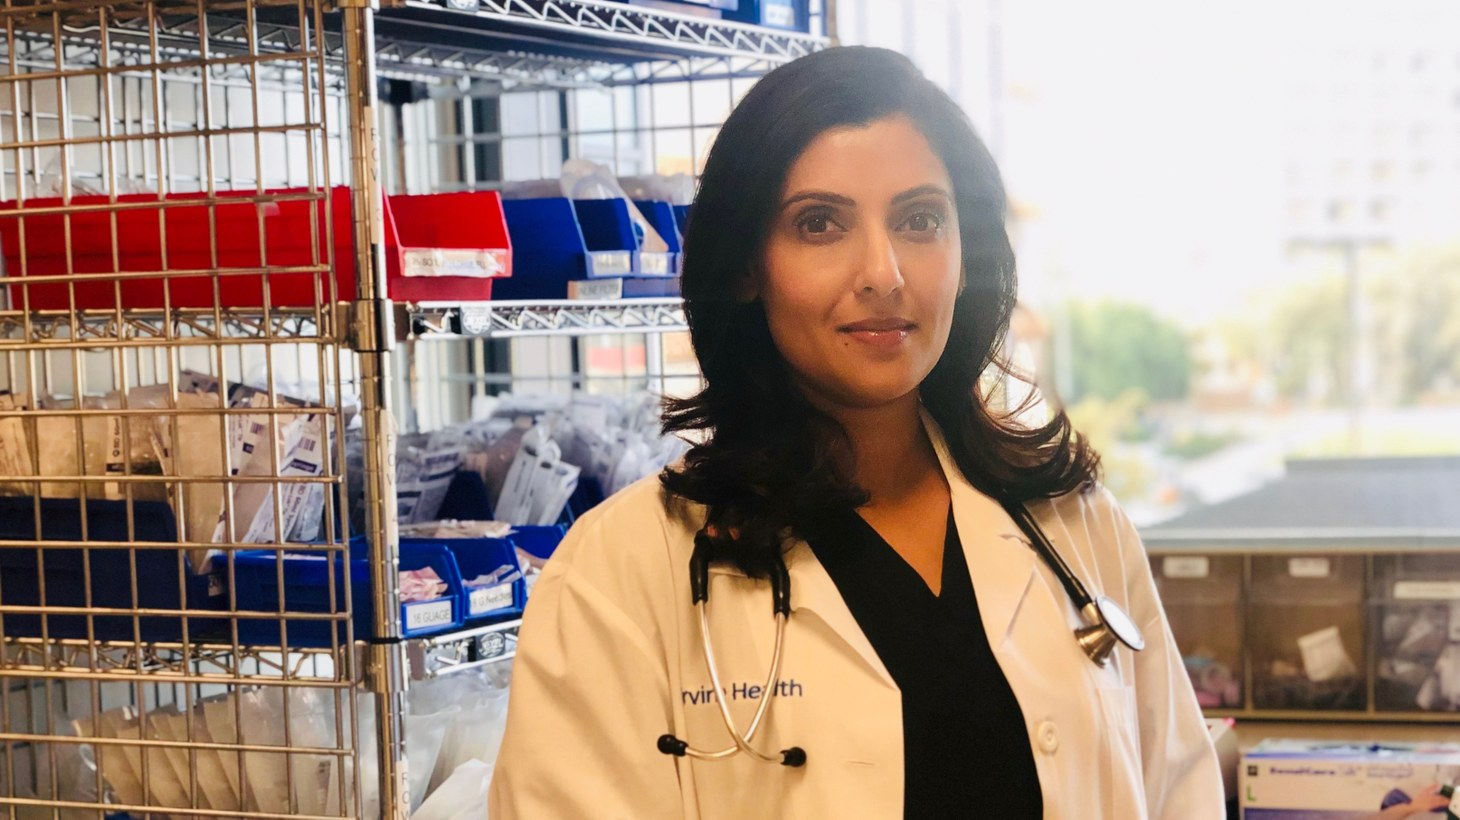 Nilu Patel is a certified registered nurse anesthesiologist at UCI. She says cases at her hospital are increasing, and she's concerned whether they're prepared for what comes next.